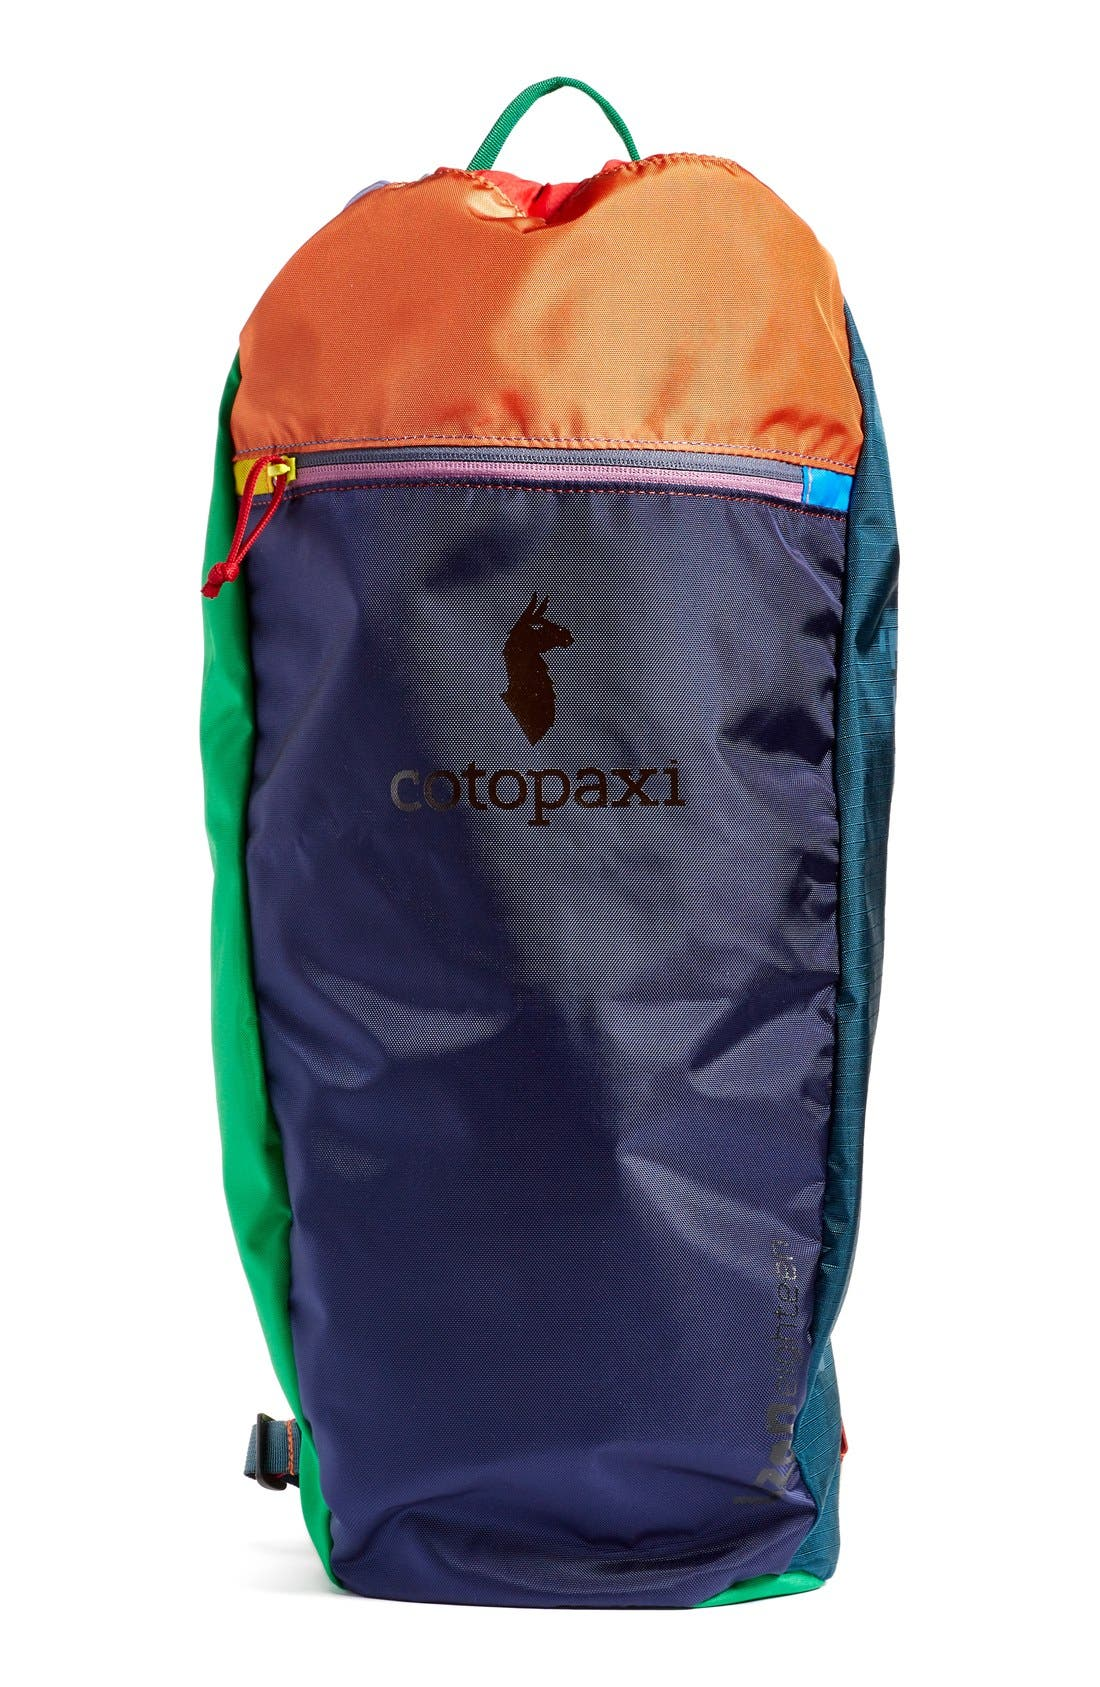 Luzon Del Dia One of a Kind Ripstop Nylon Daypack,                             Alternate thumbnail 4, color,